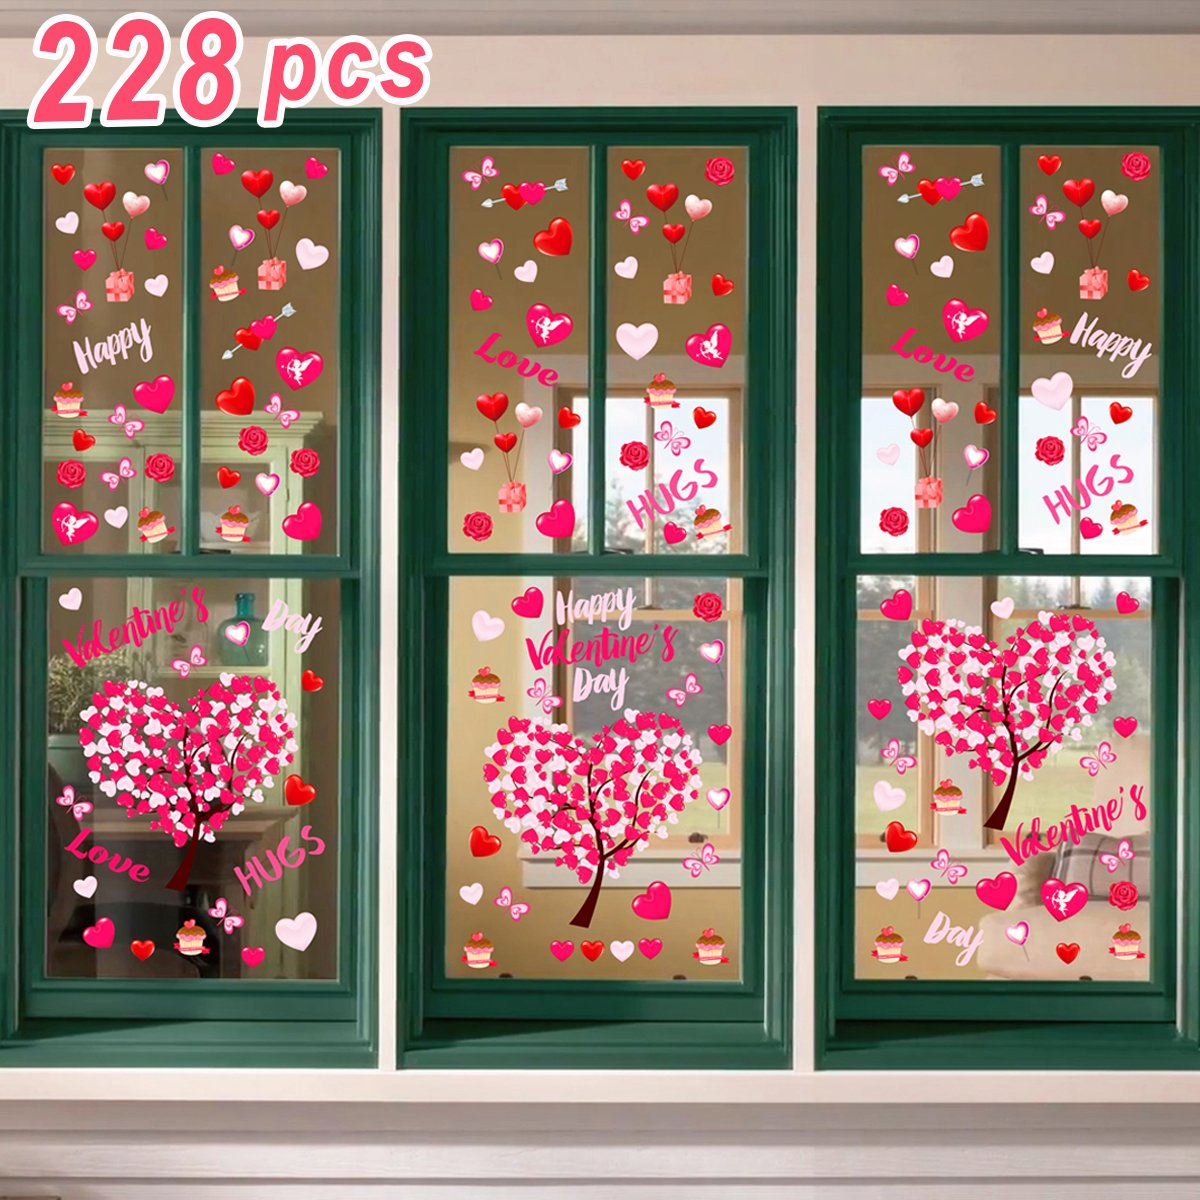 Ivenf 4ft x 4ft Extra Large Heart Valentine's Day Window Clings Decorations, Kids School Home Office Valentines Hearts Accessories Birthday Party Supplies Gifts, Pink Set